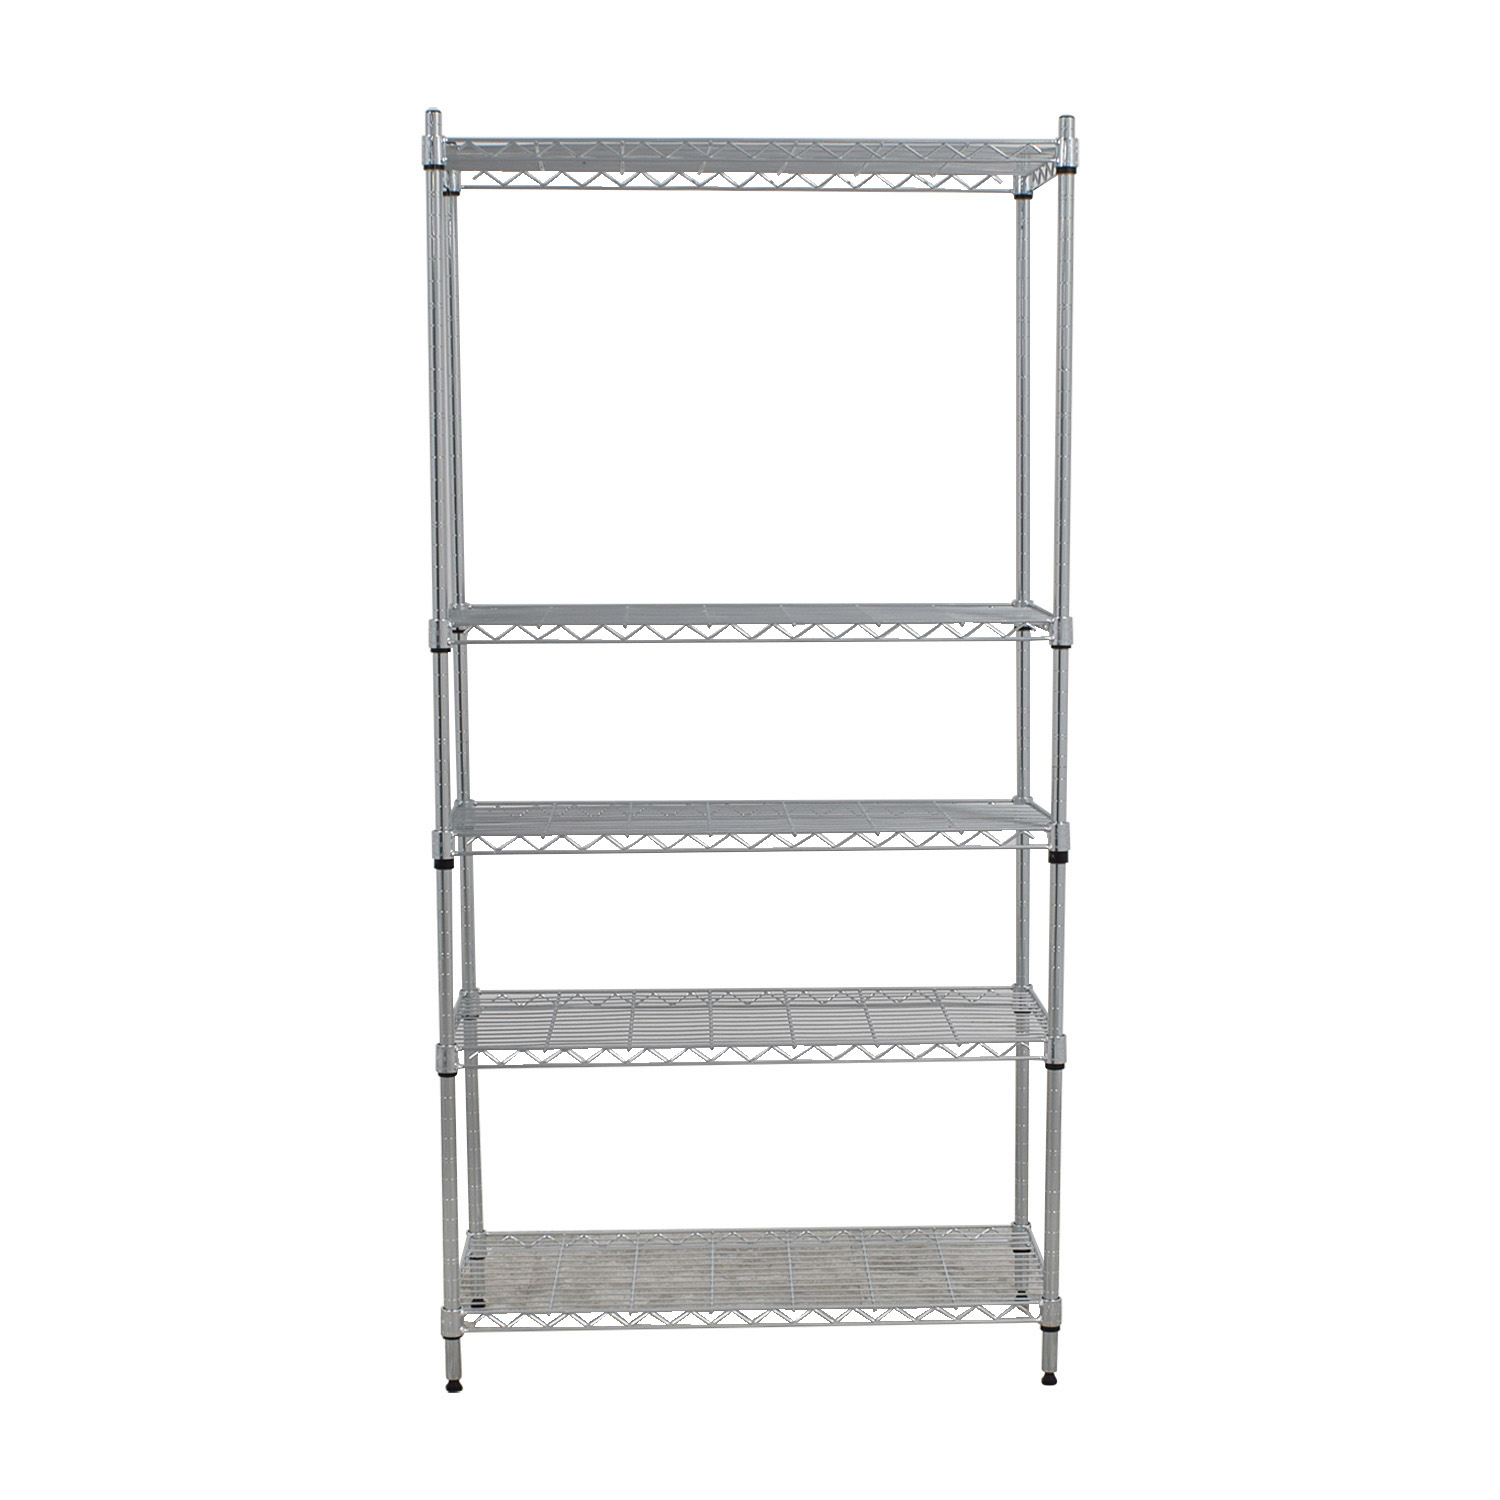 50 Off Seville Classics Seville Classics Metal Kitchen Rack Storage